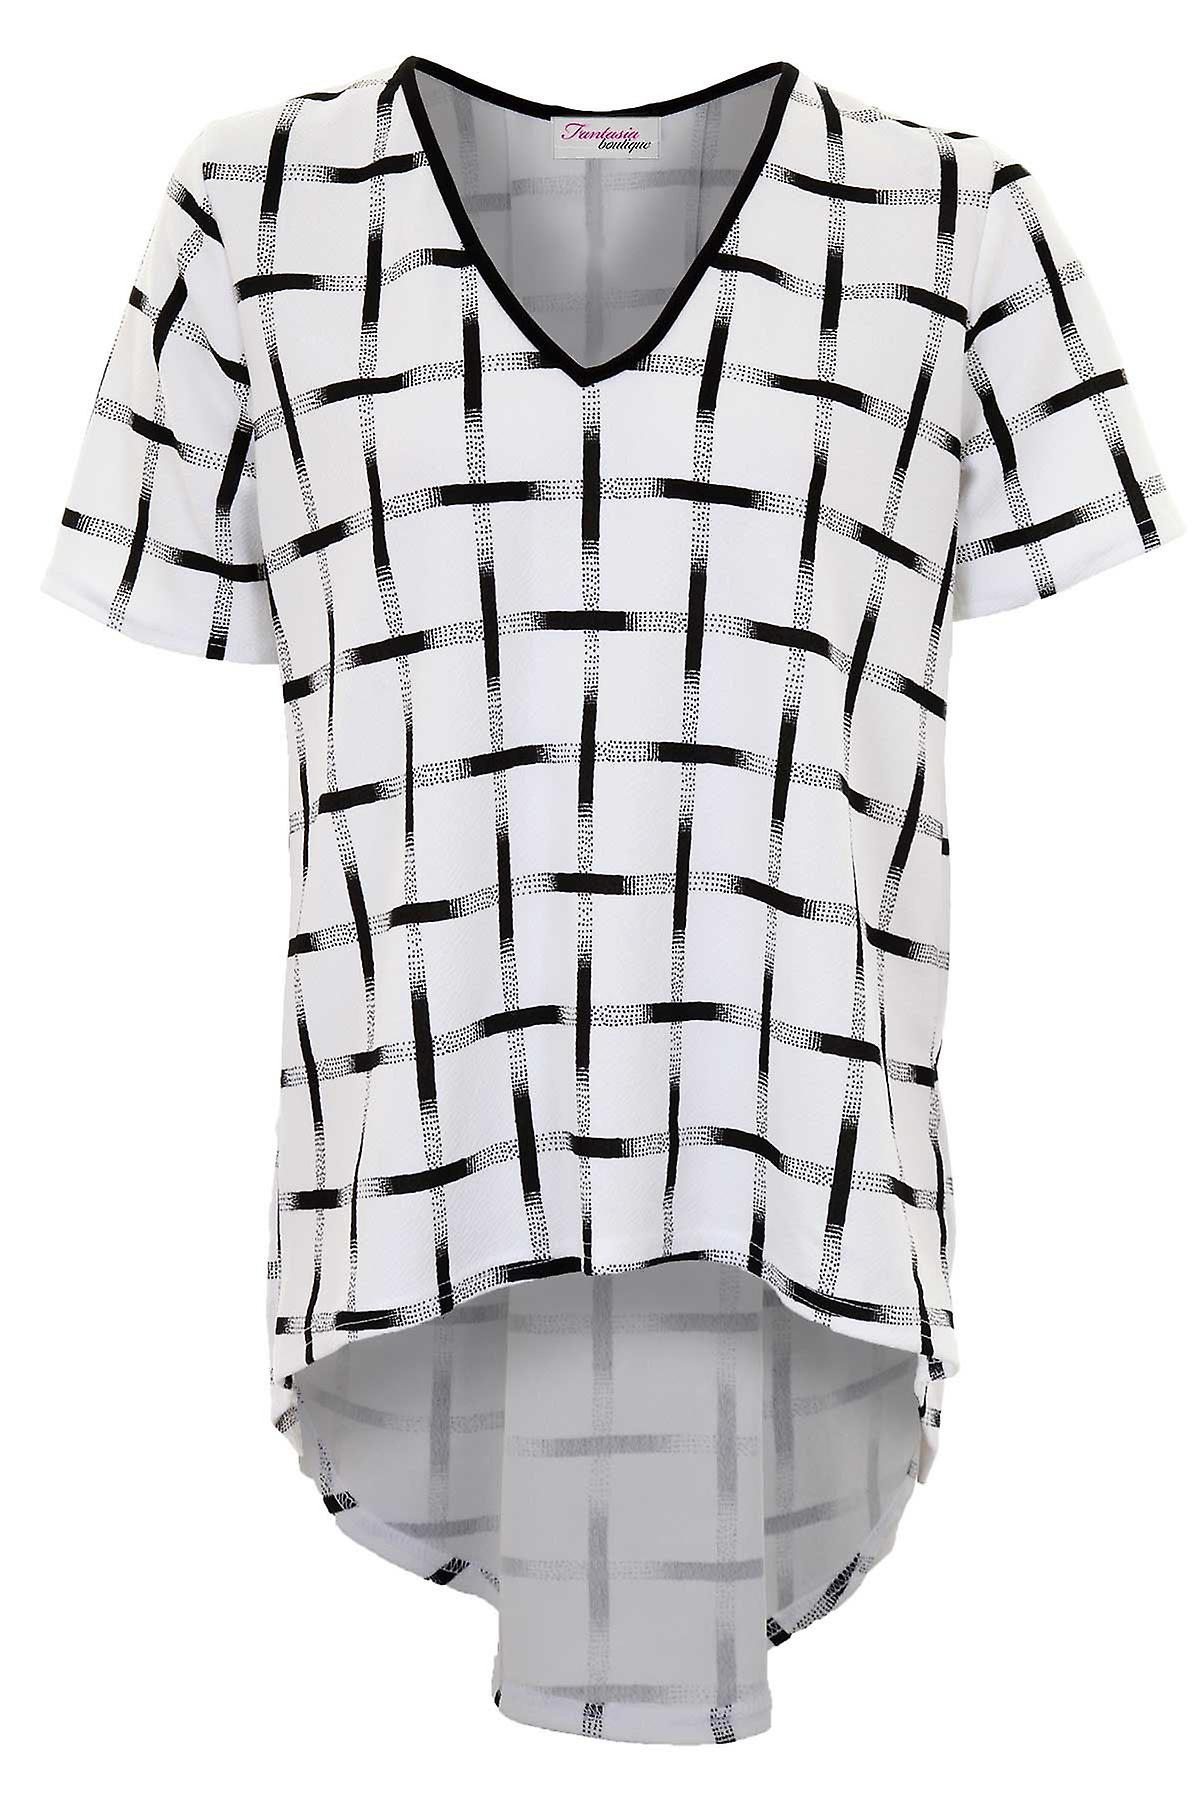 Ladies Short Sleeve V Neck Smart Check Pattern High Low Pleated Women's Top